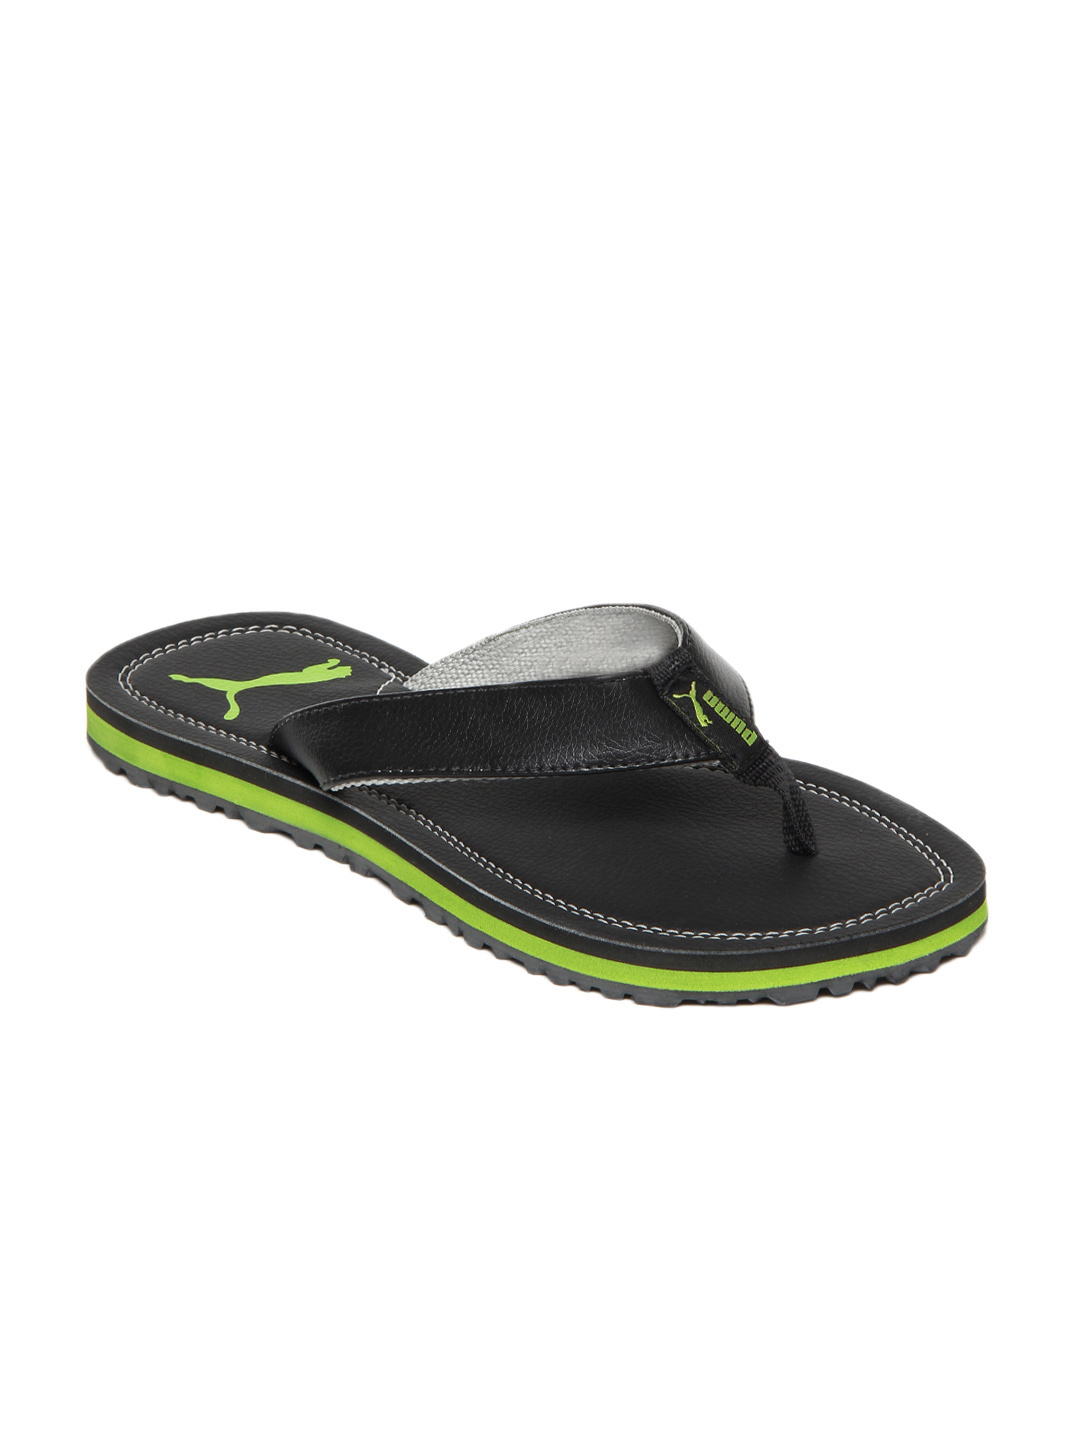 us 10 size puma men tango ii black flip flop ebay. Black Bedroom Furniture Sets. Home Design Ideas